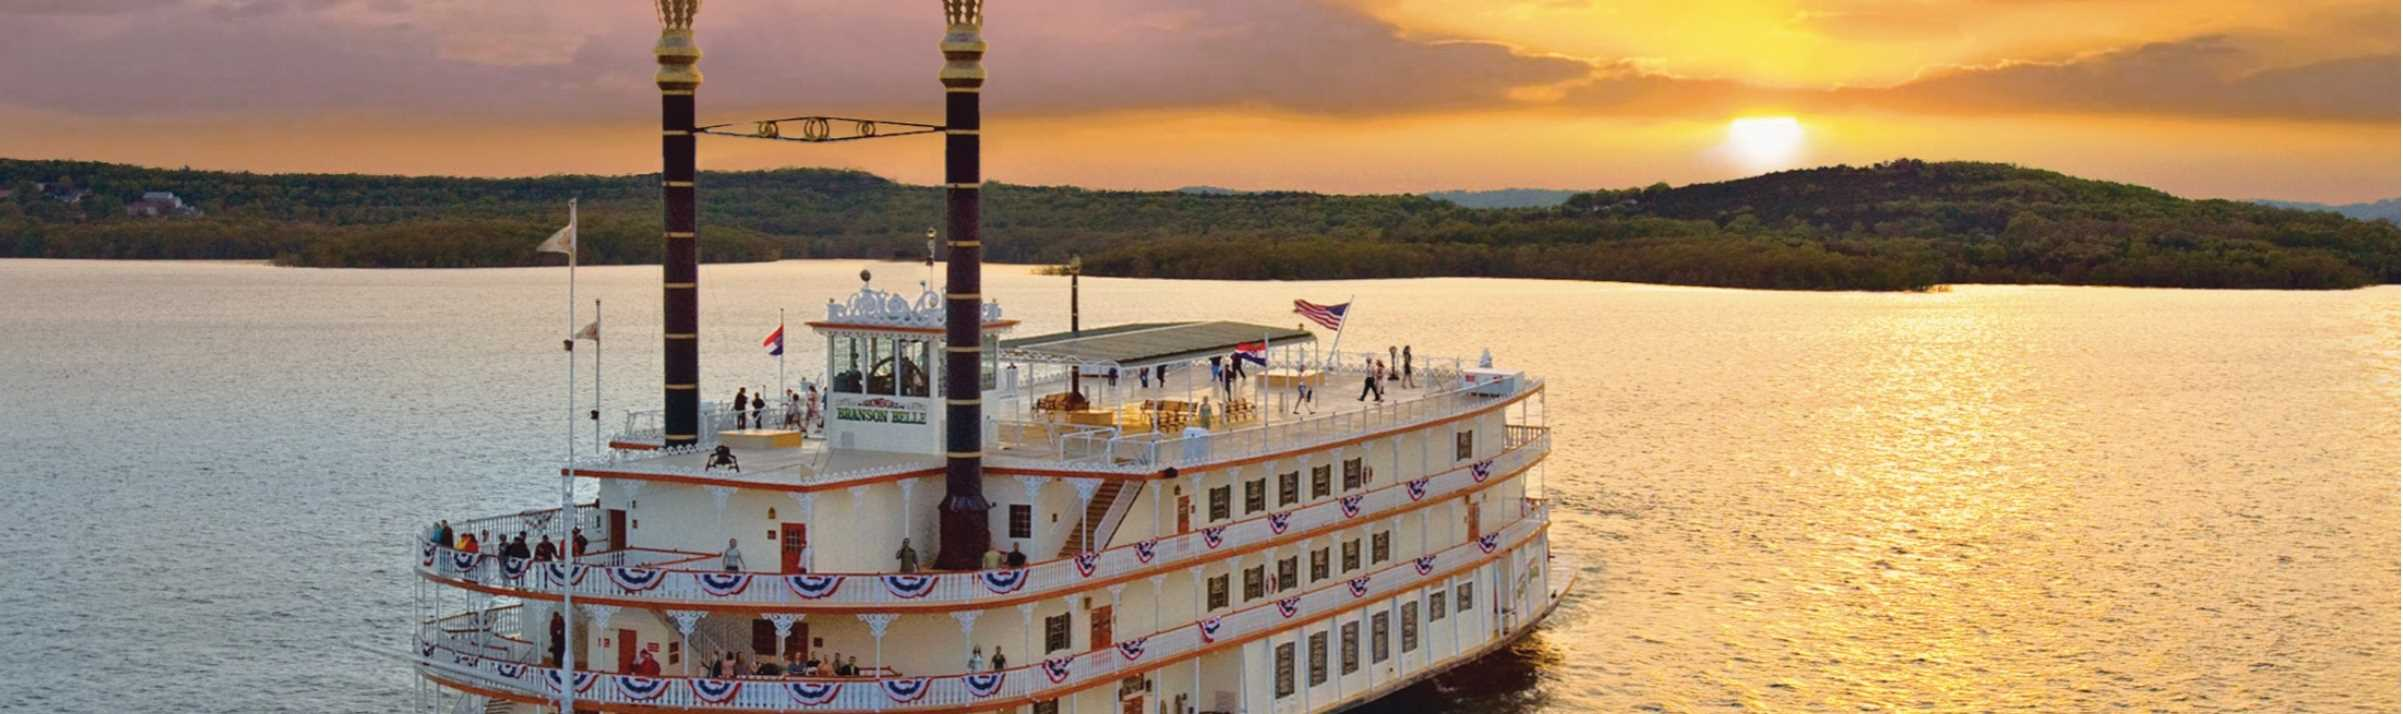 Branson MO Real Estate Agent - Showboat Branson Belle